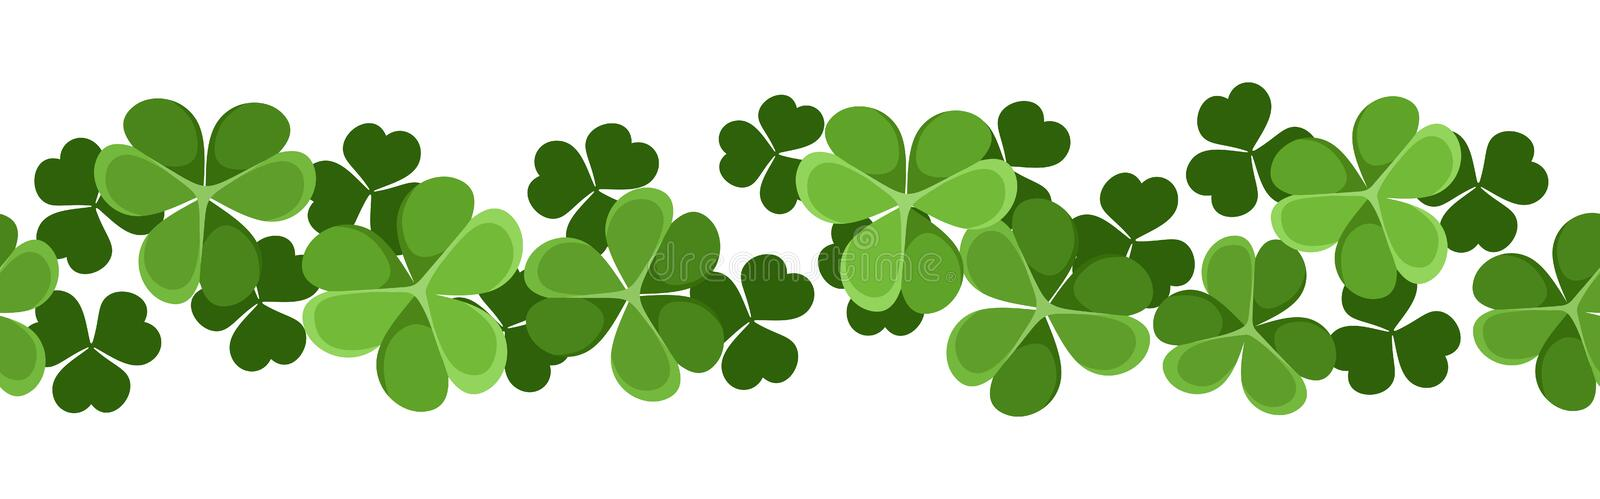 Download Horizontal Seamless Background With Shamrock. Stock Vector - Image: 28990859